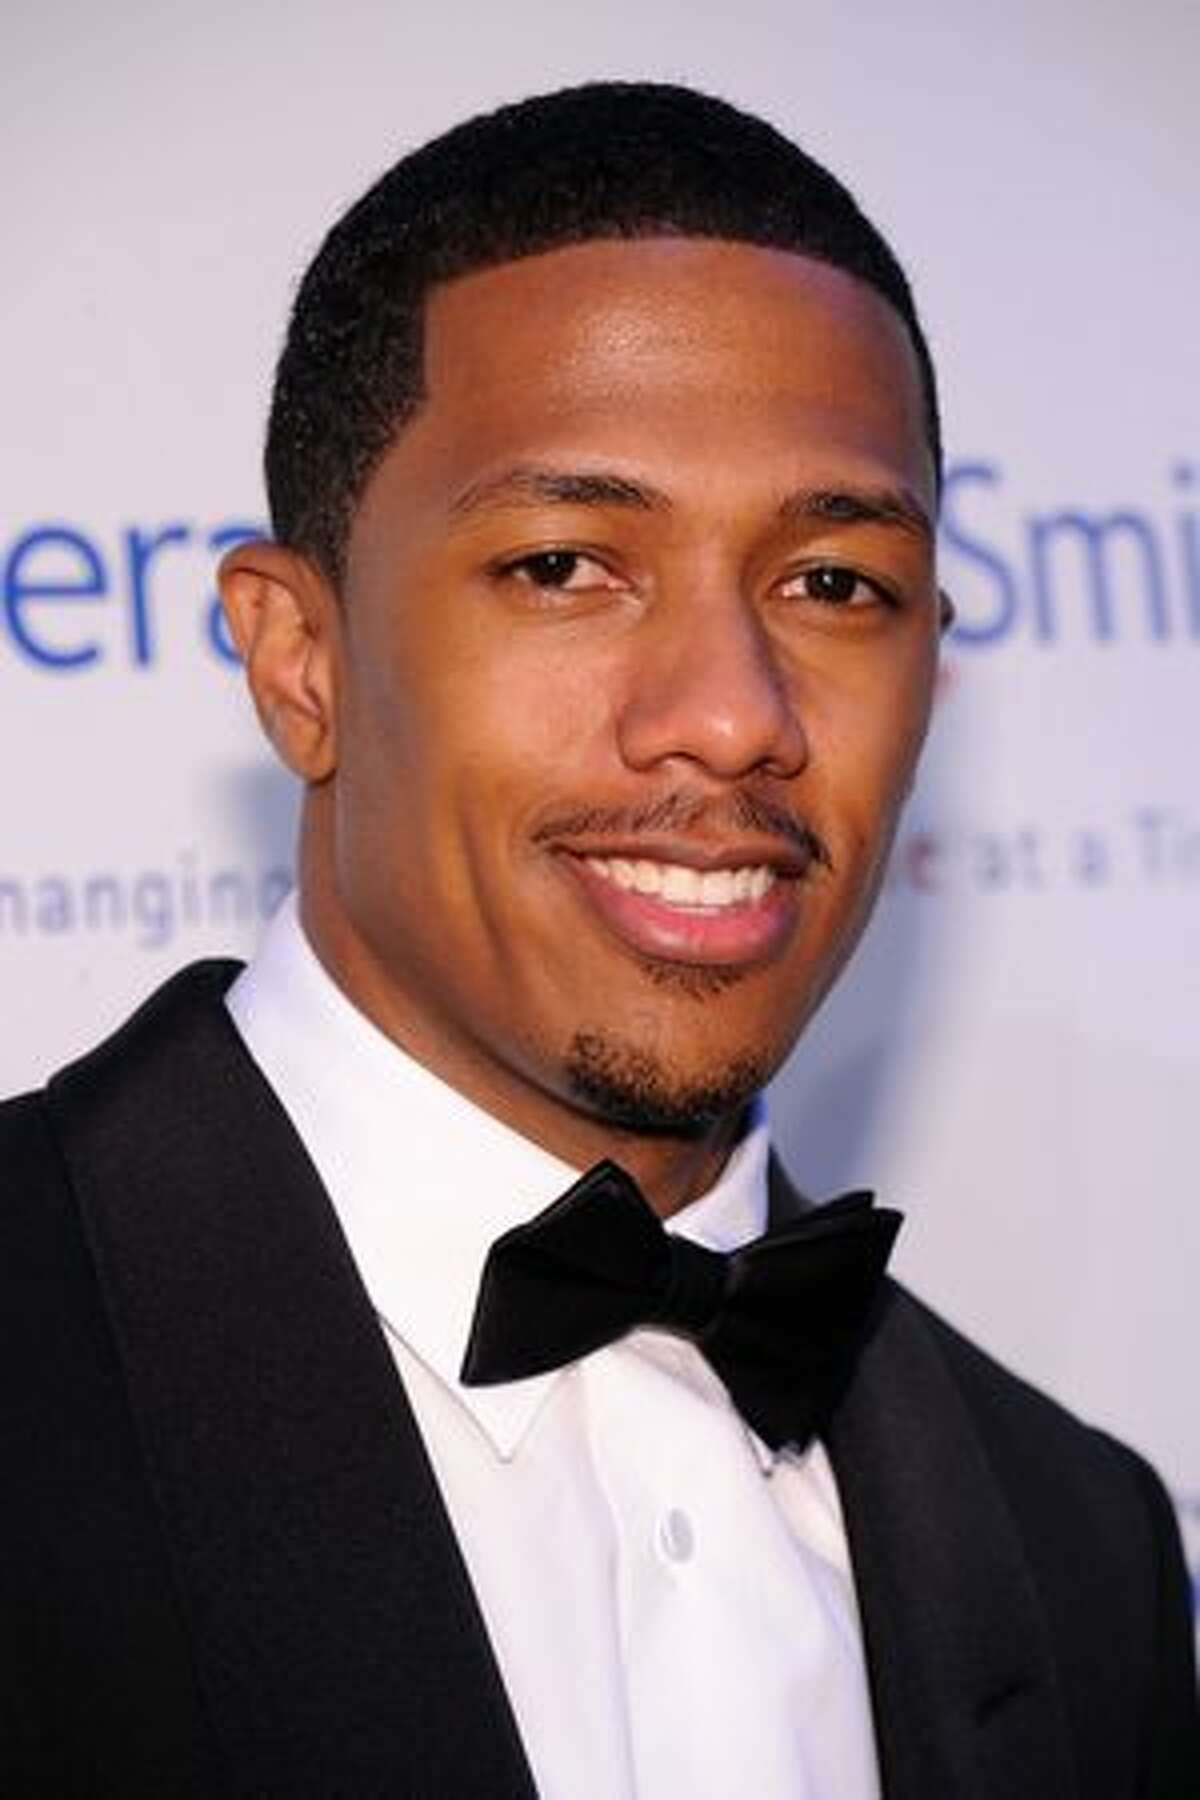 Actor Nick Cannon attends the 2010 Operation Smile annual gala at Cipriani, Wall Street on May 6, 2010 in New York City.